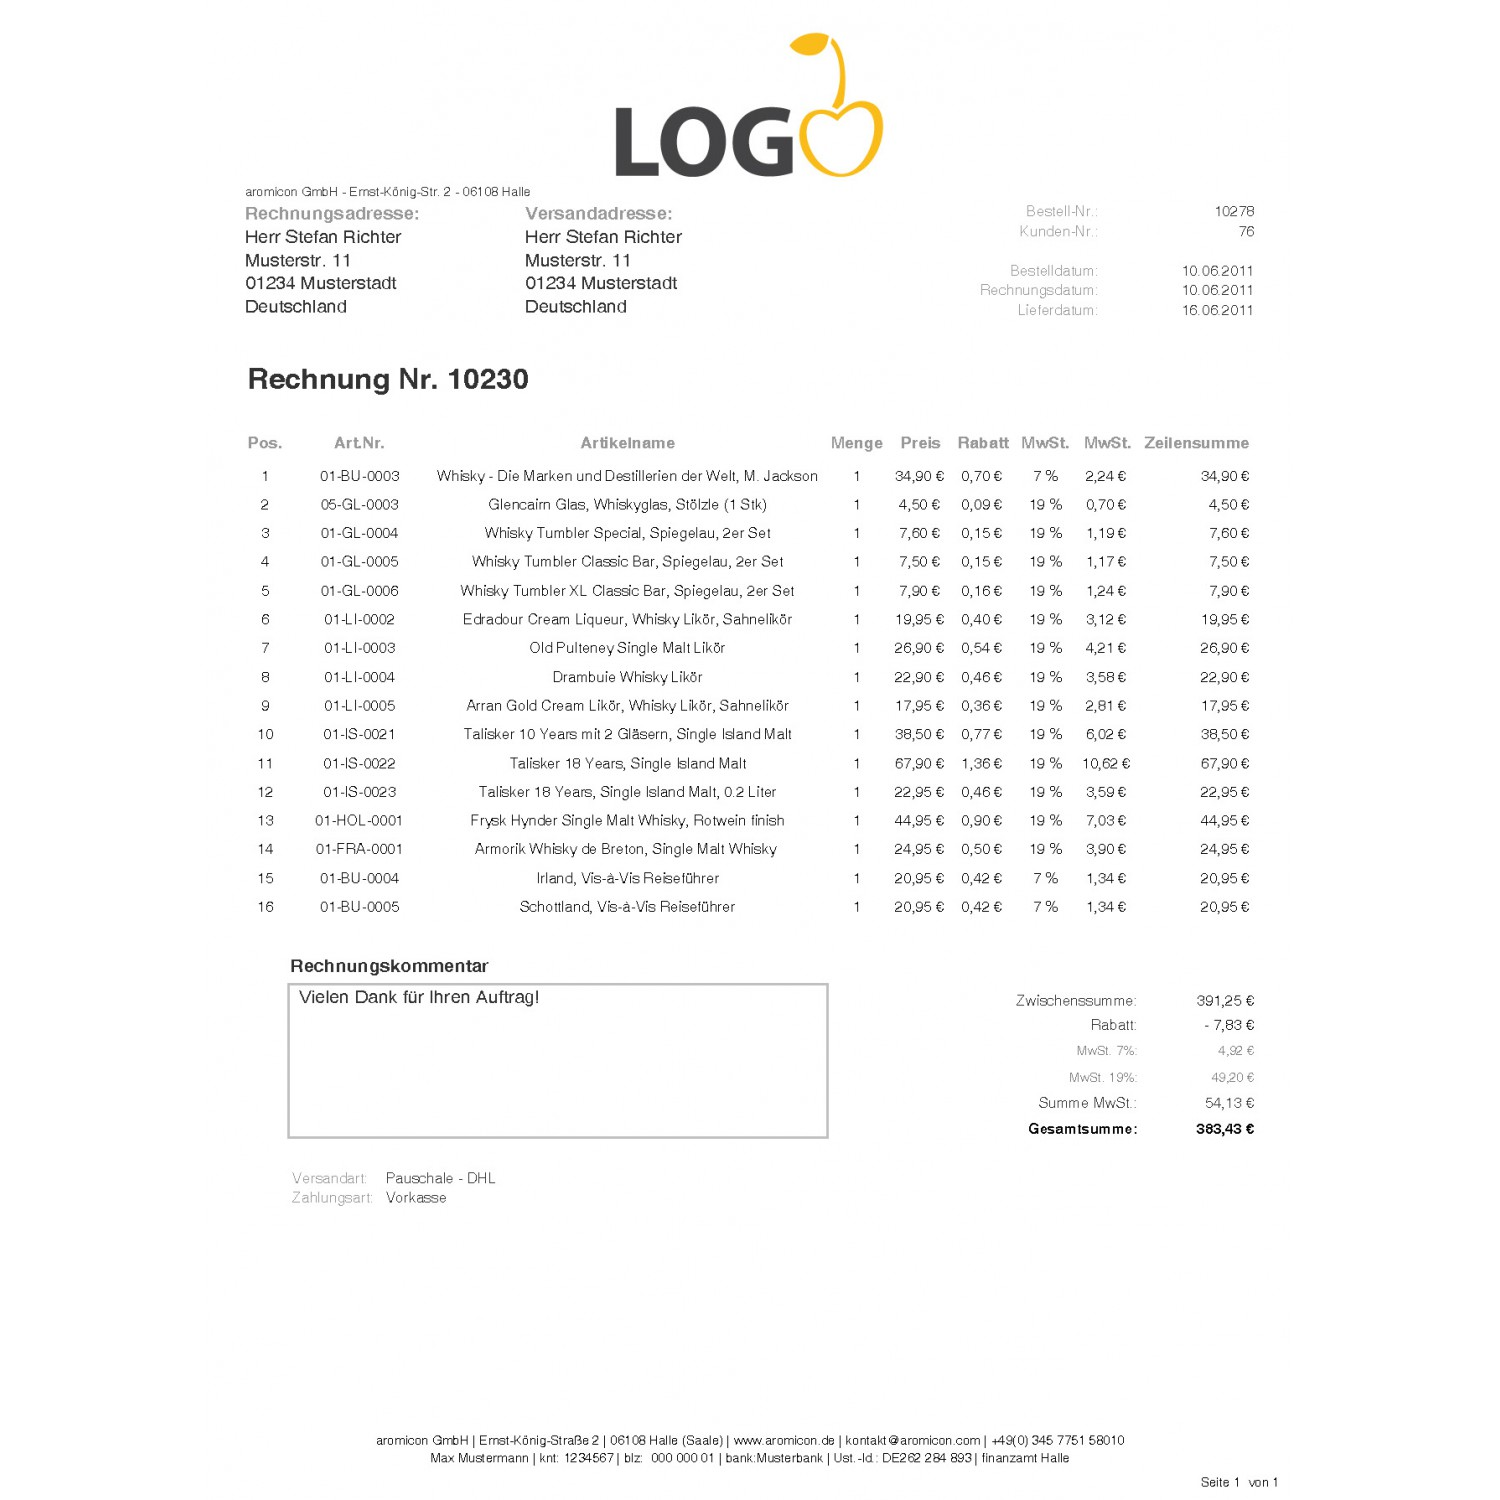 Receipt Printing Software Download German Invoice Template Word  Rabitahnet World Vision Donation Receipt Word with Invoices Factoring Invoice Pdf Pro  Standard Invoice Template German  Aromicon Simple  Invoice Invoice Forms Printable